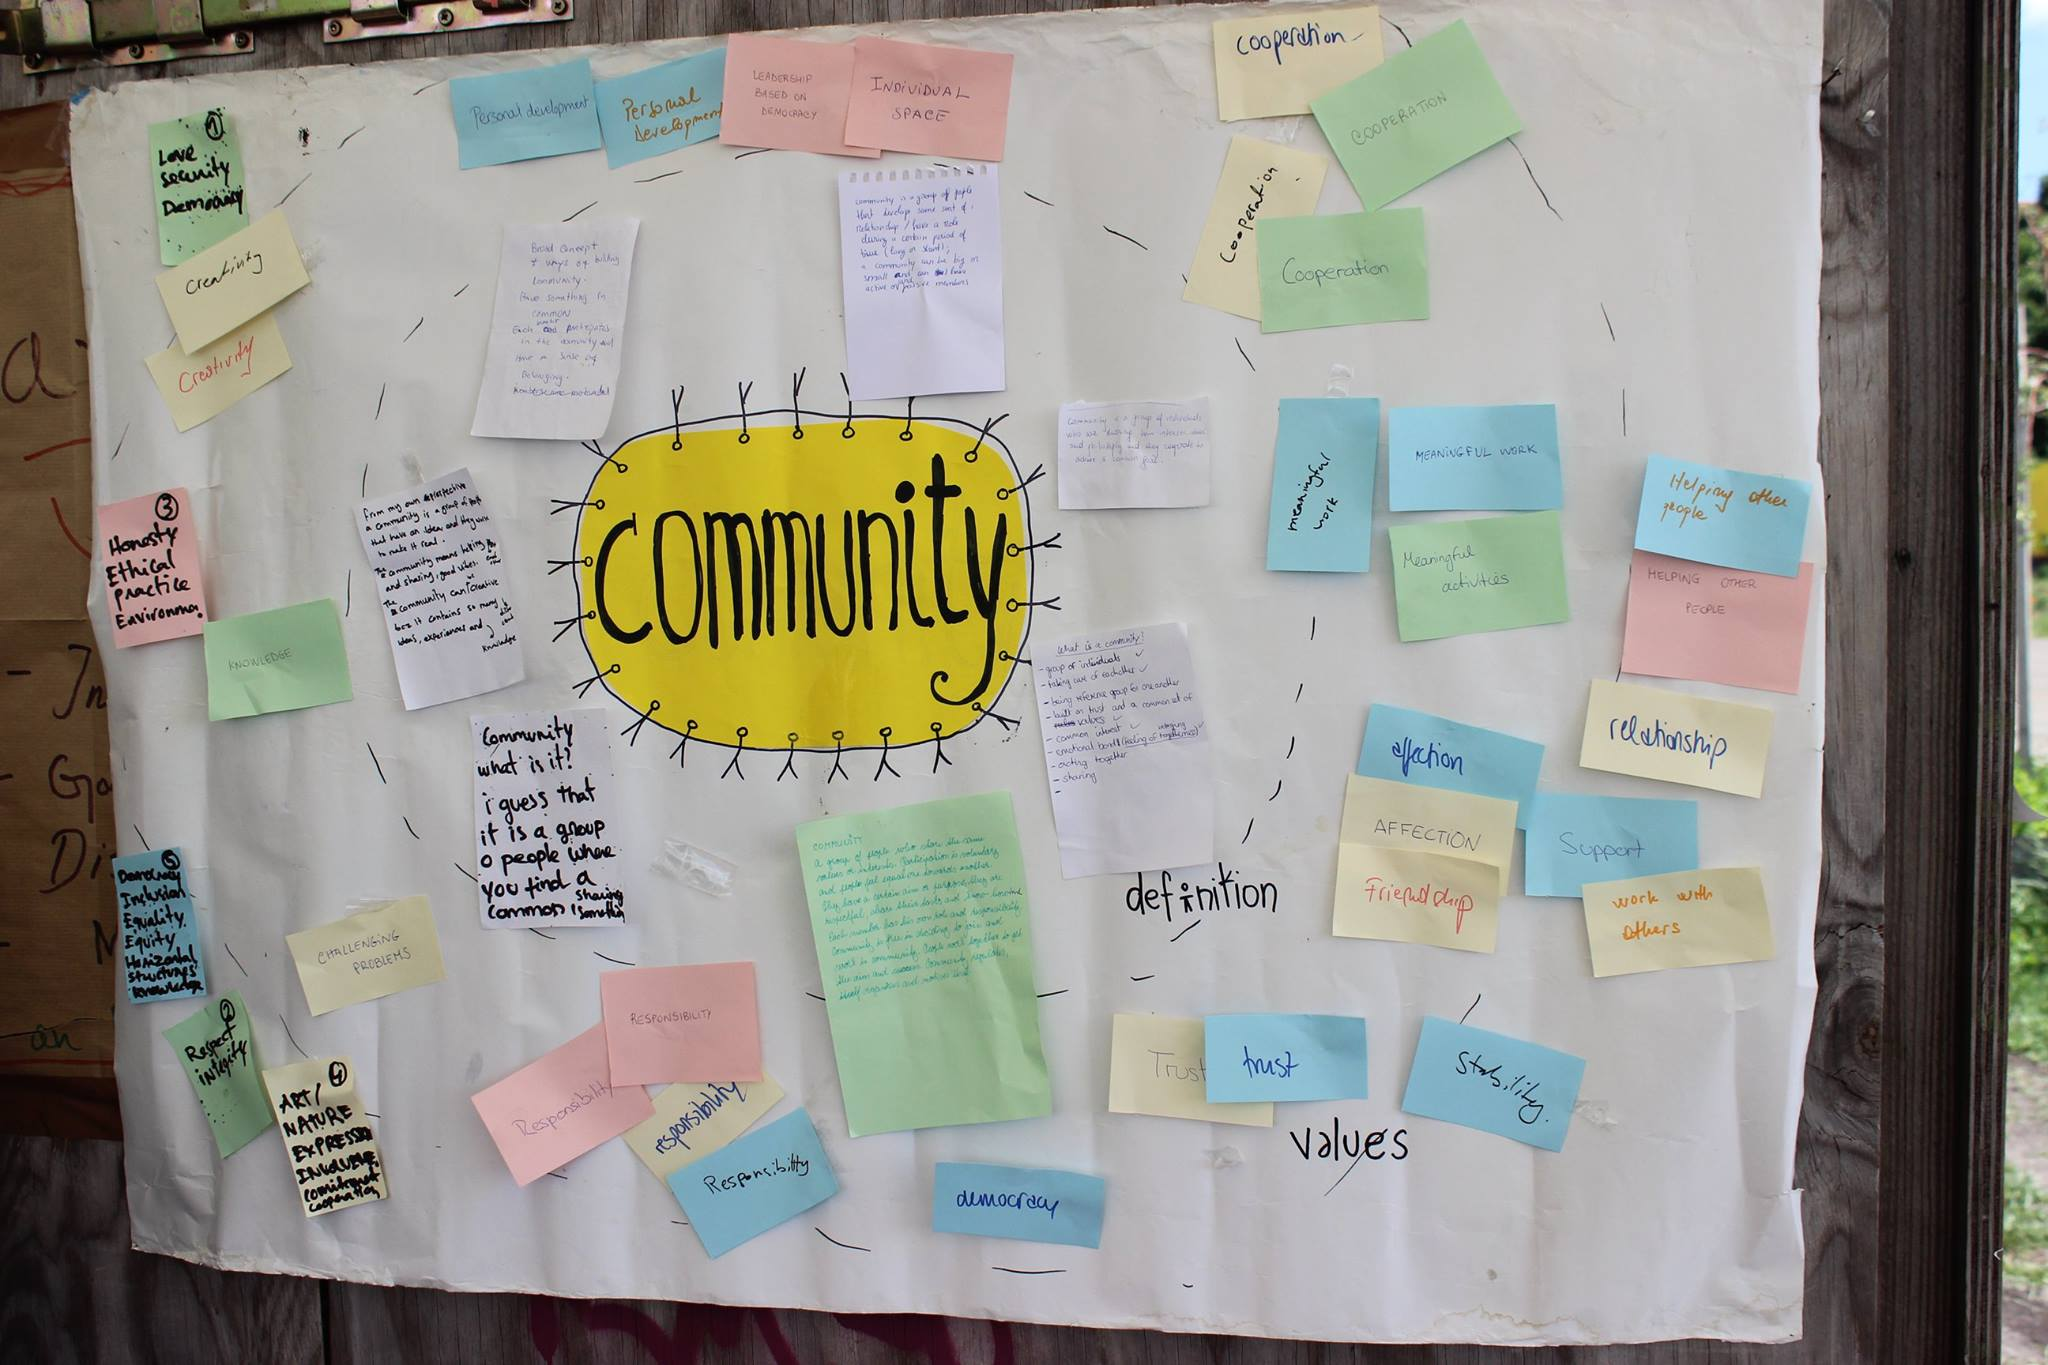 What is a community and which values are essential for it